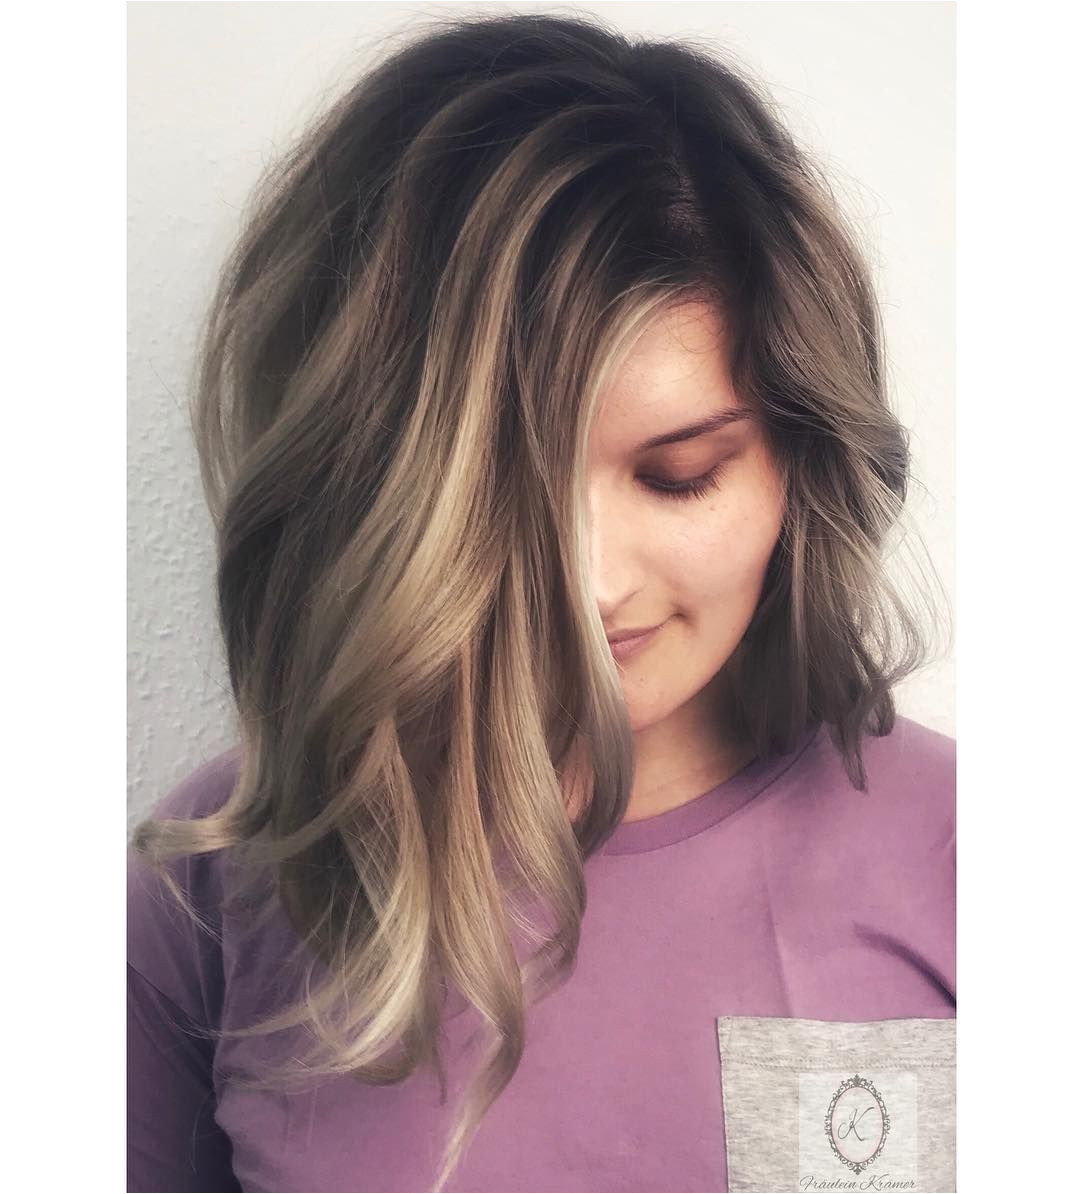 haircolor & hairstyle by Fräulein Krämer hairstylist Michelle michellerosshair rootstretch foilyage balayage babylights highlights…